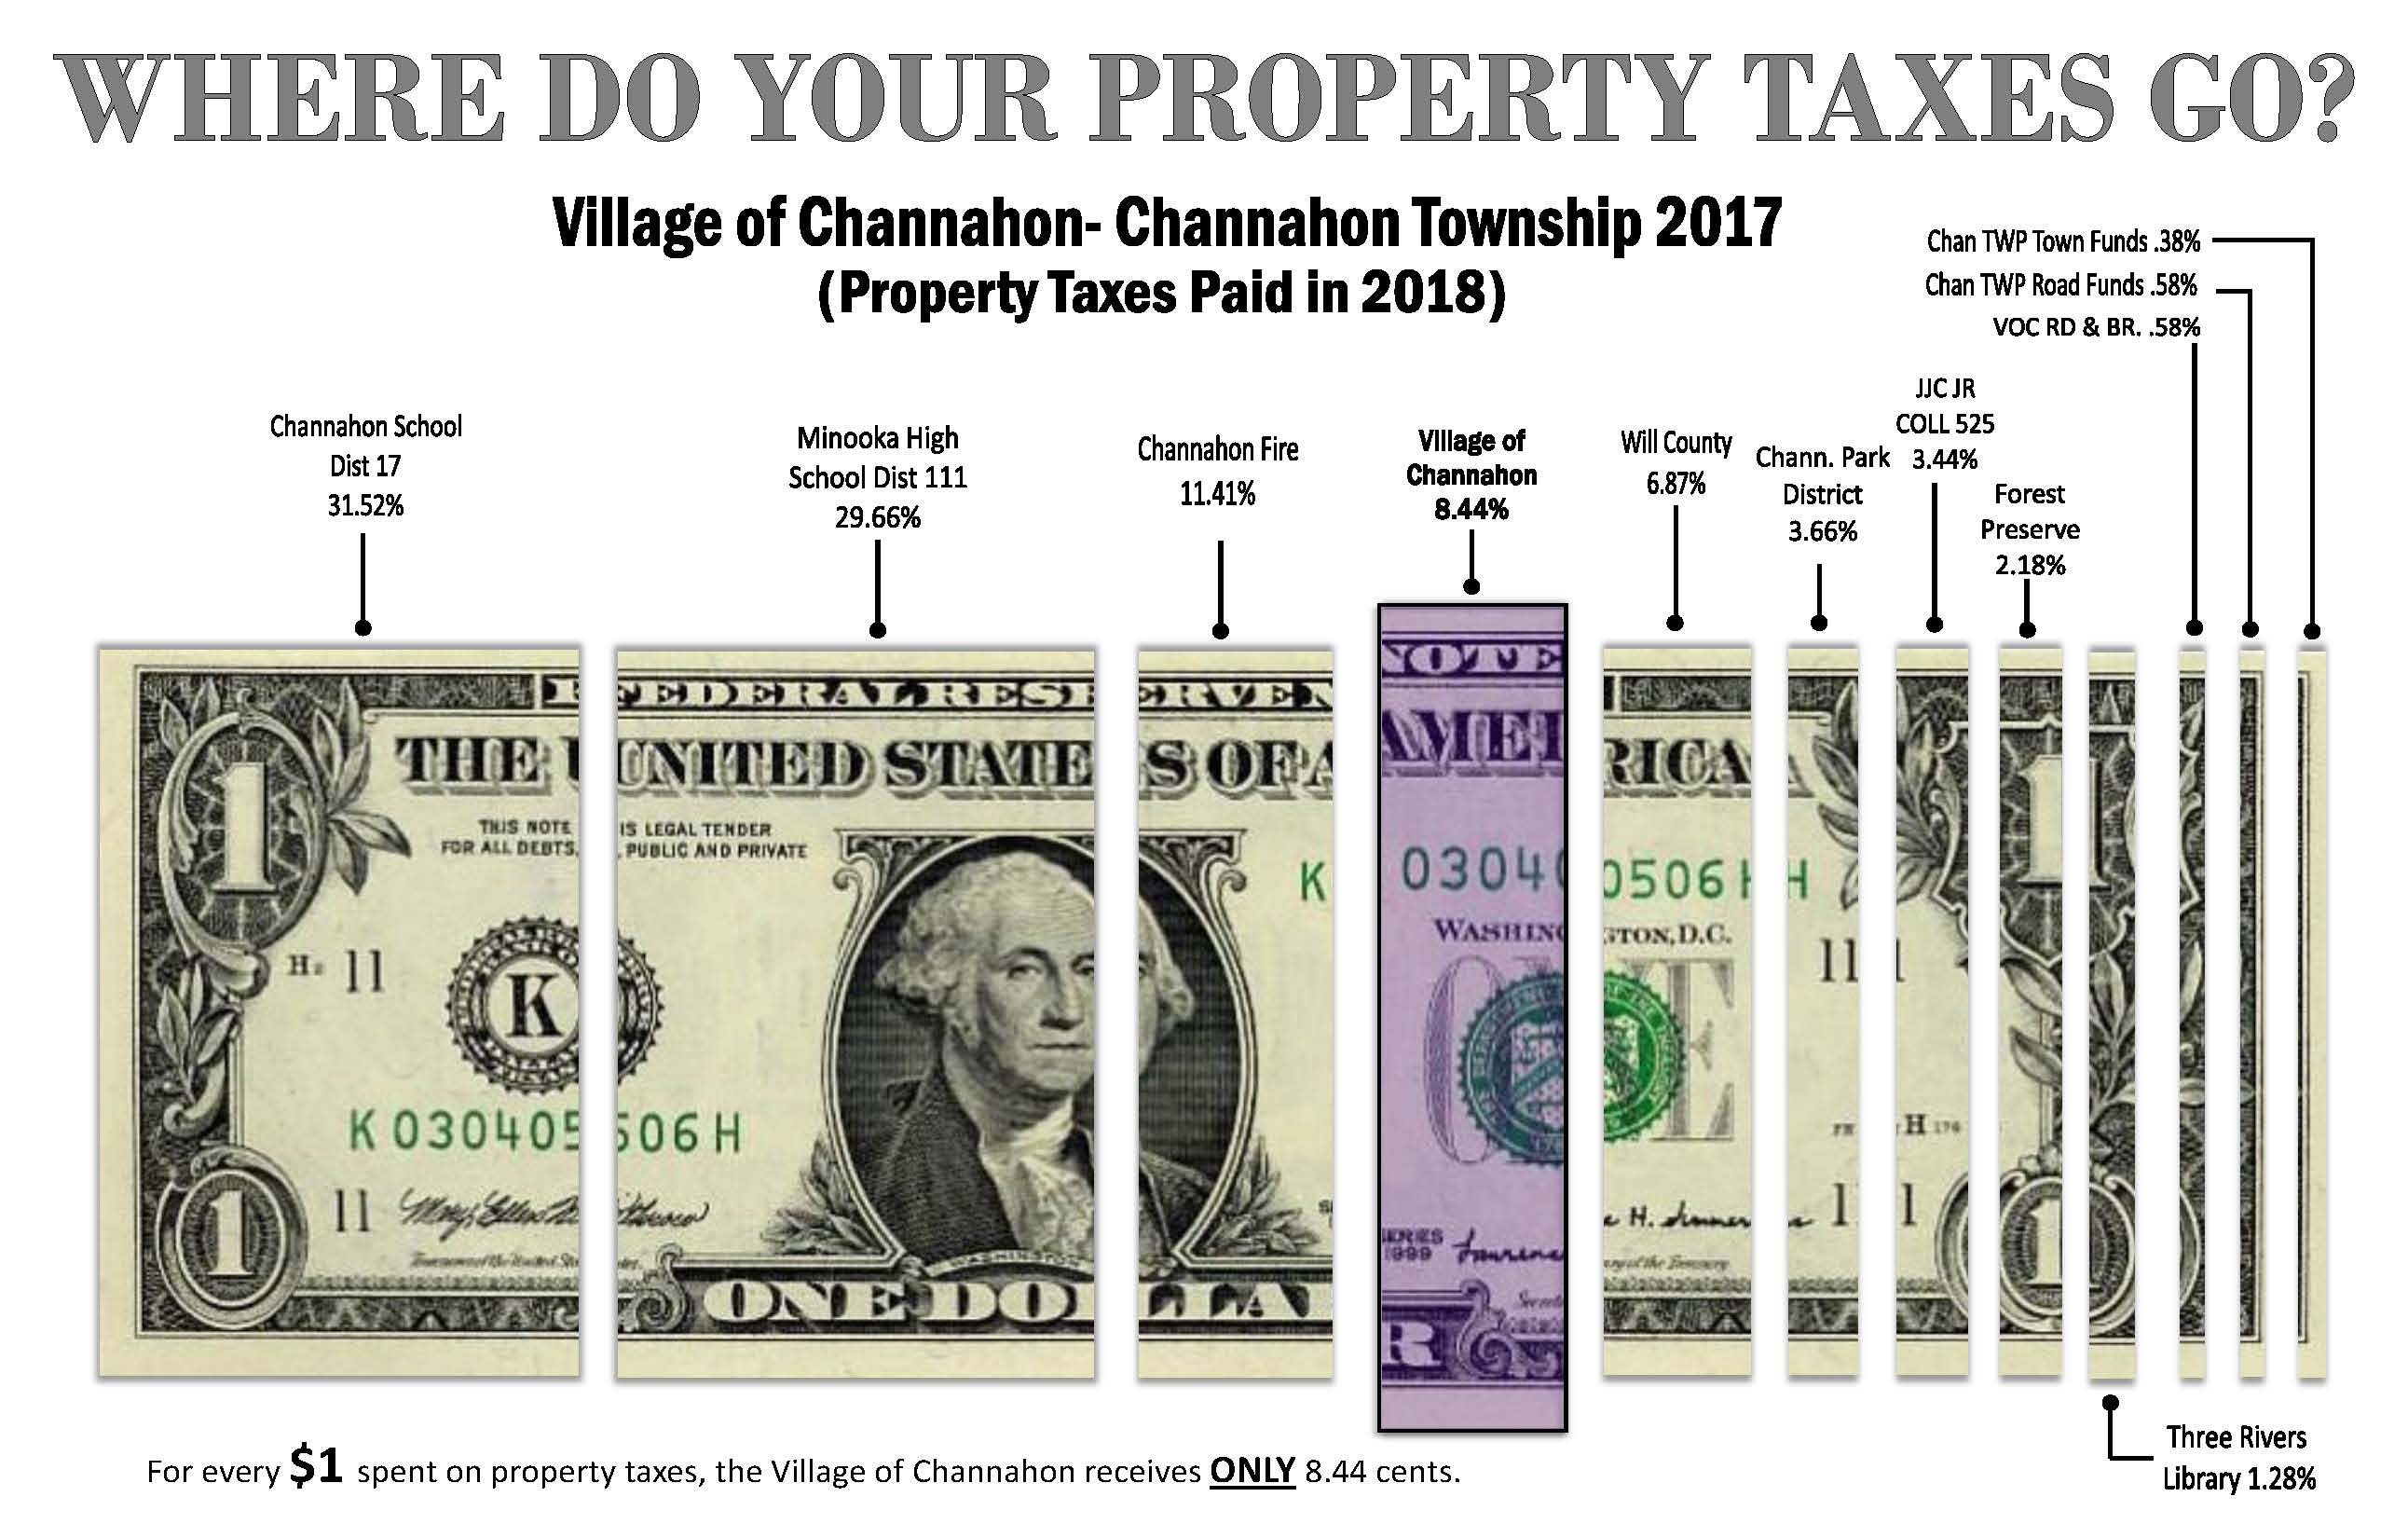 Channahon Township - Property Taxes Paid in 2018 (PDF)